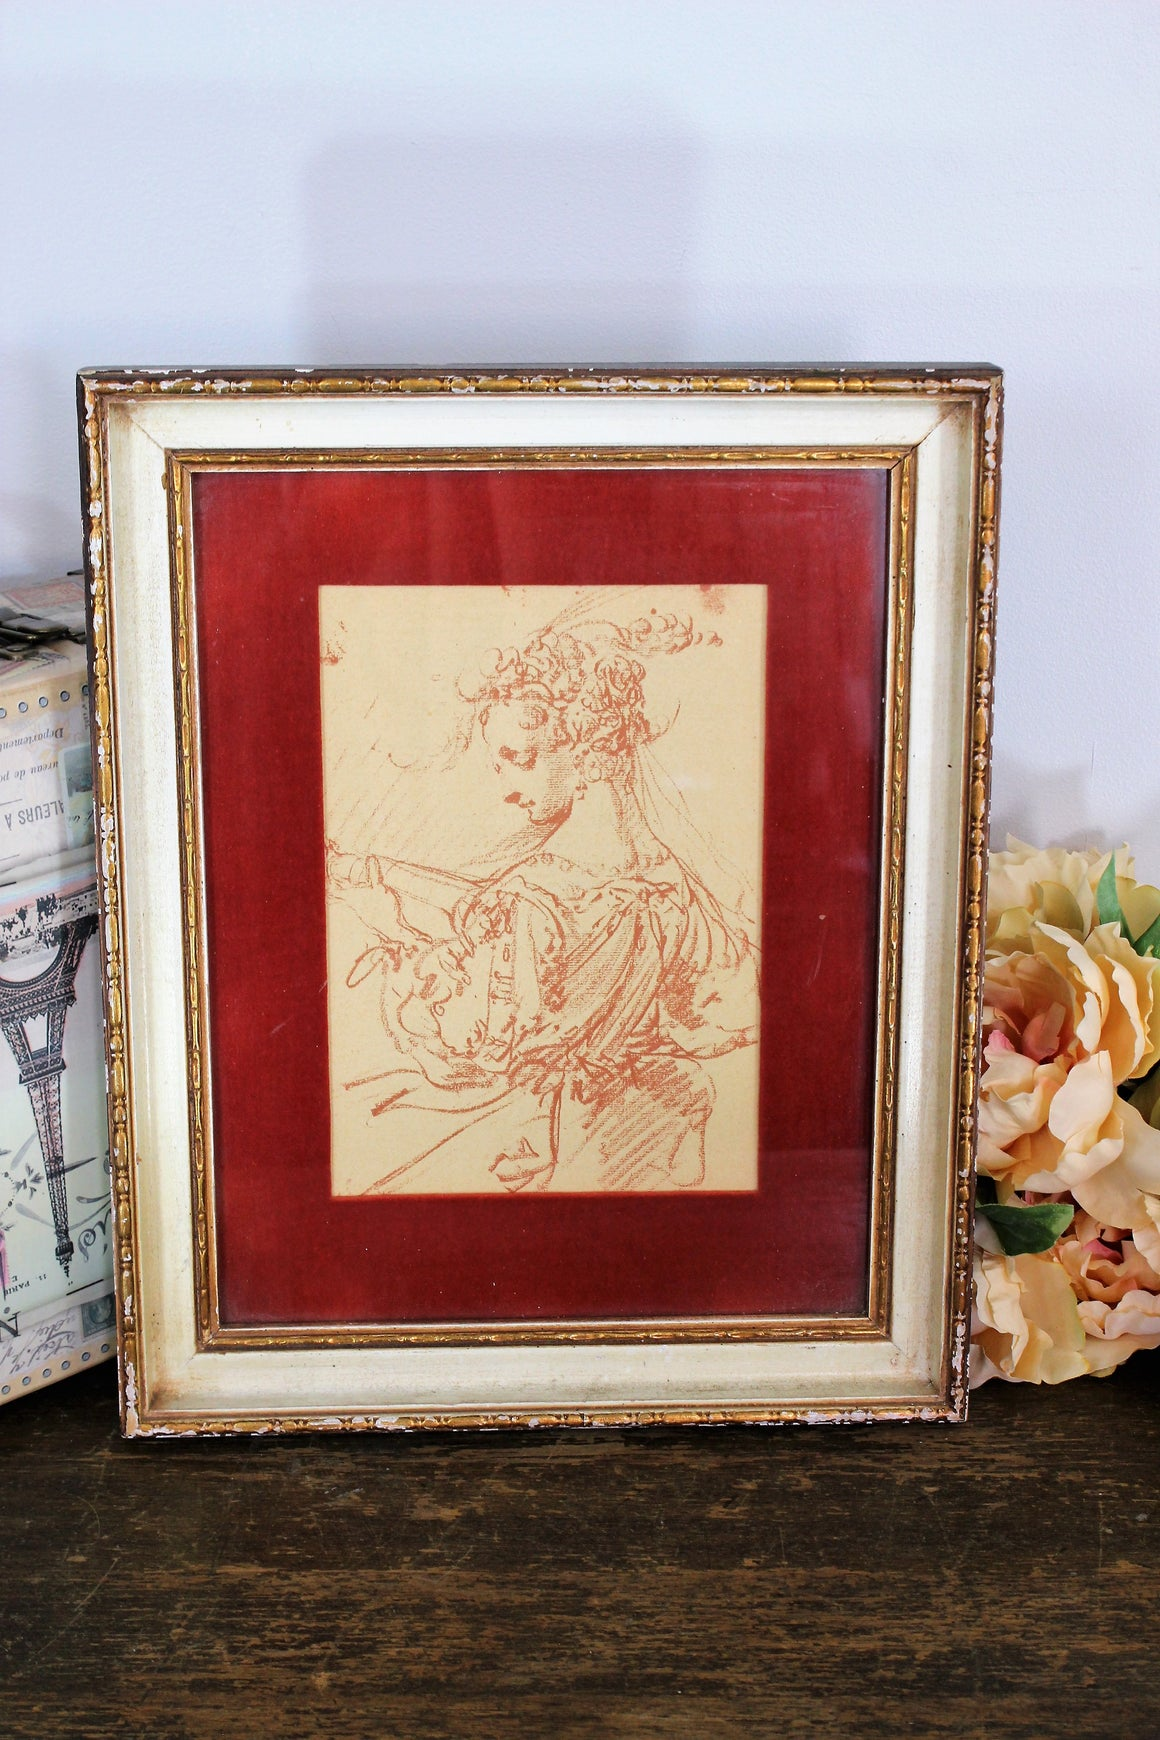 Vintage Midcentury Framed Etching Art Print Portrait Matted in Red Velvet